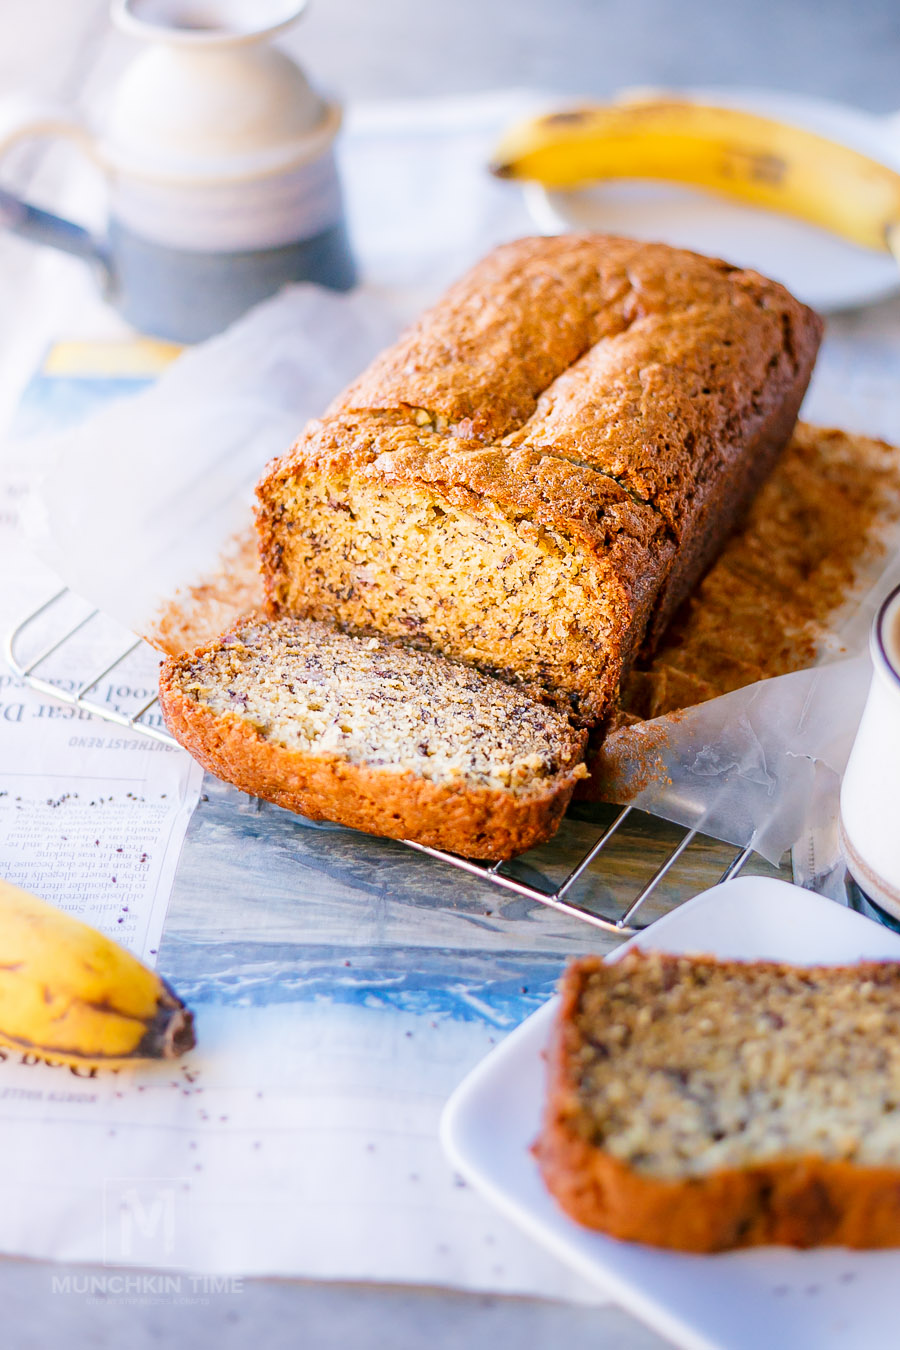 Delicious Chia Seed Banana Bread Recipe - moist and loaded with delicious sweet flavor of mashed bananas and chia seeds. Recipe by MunchkinTime.com